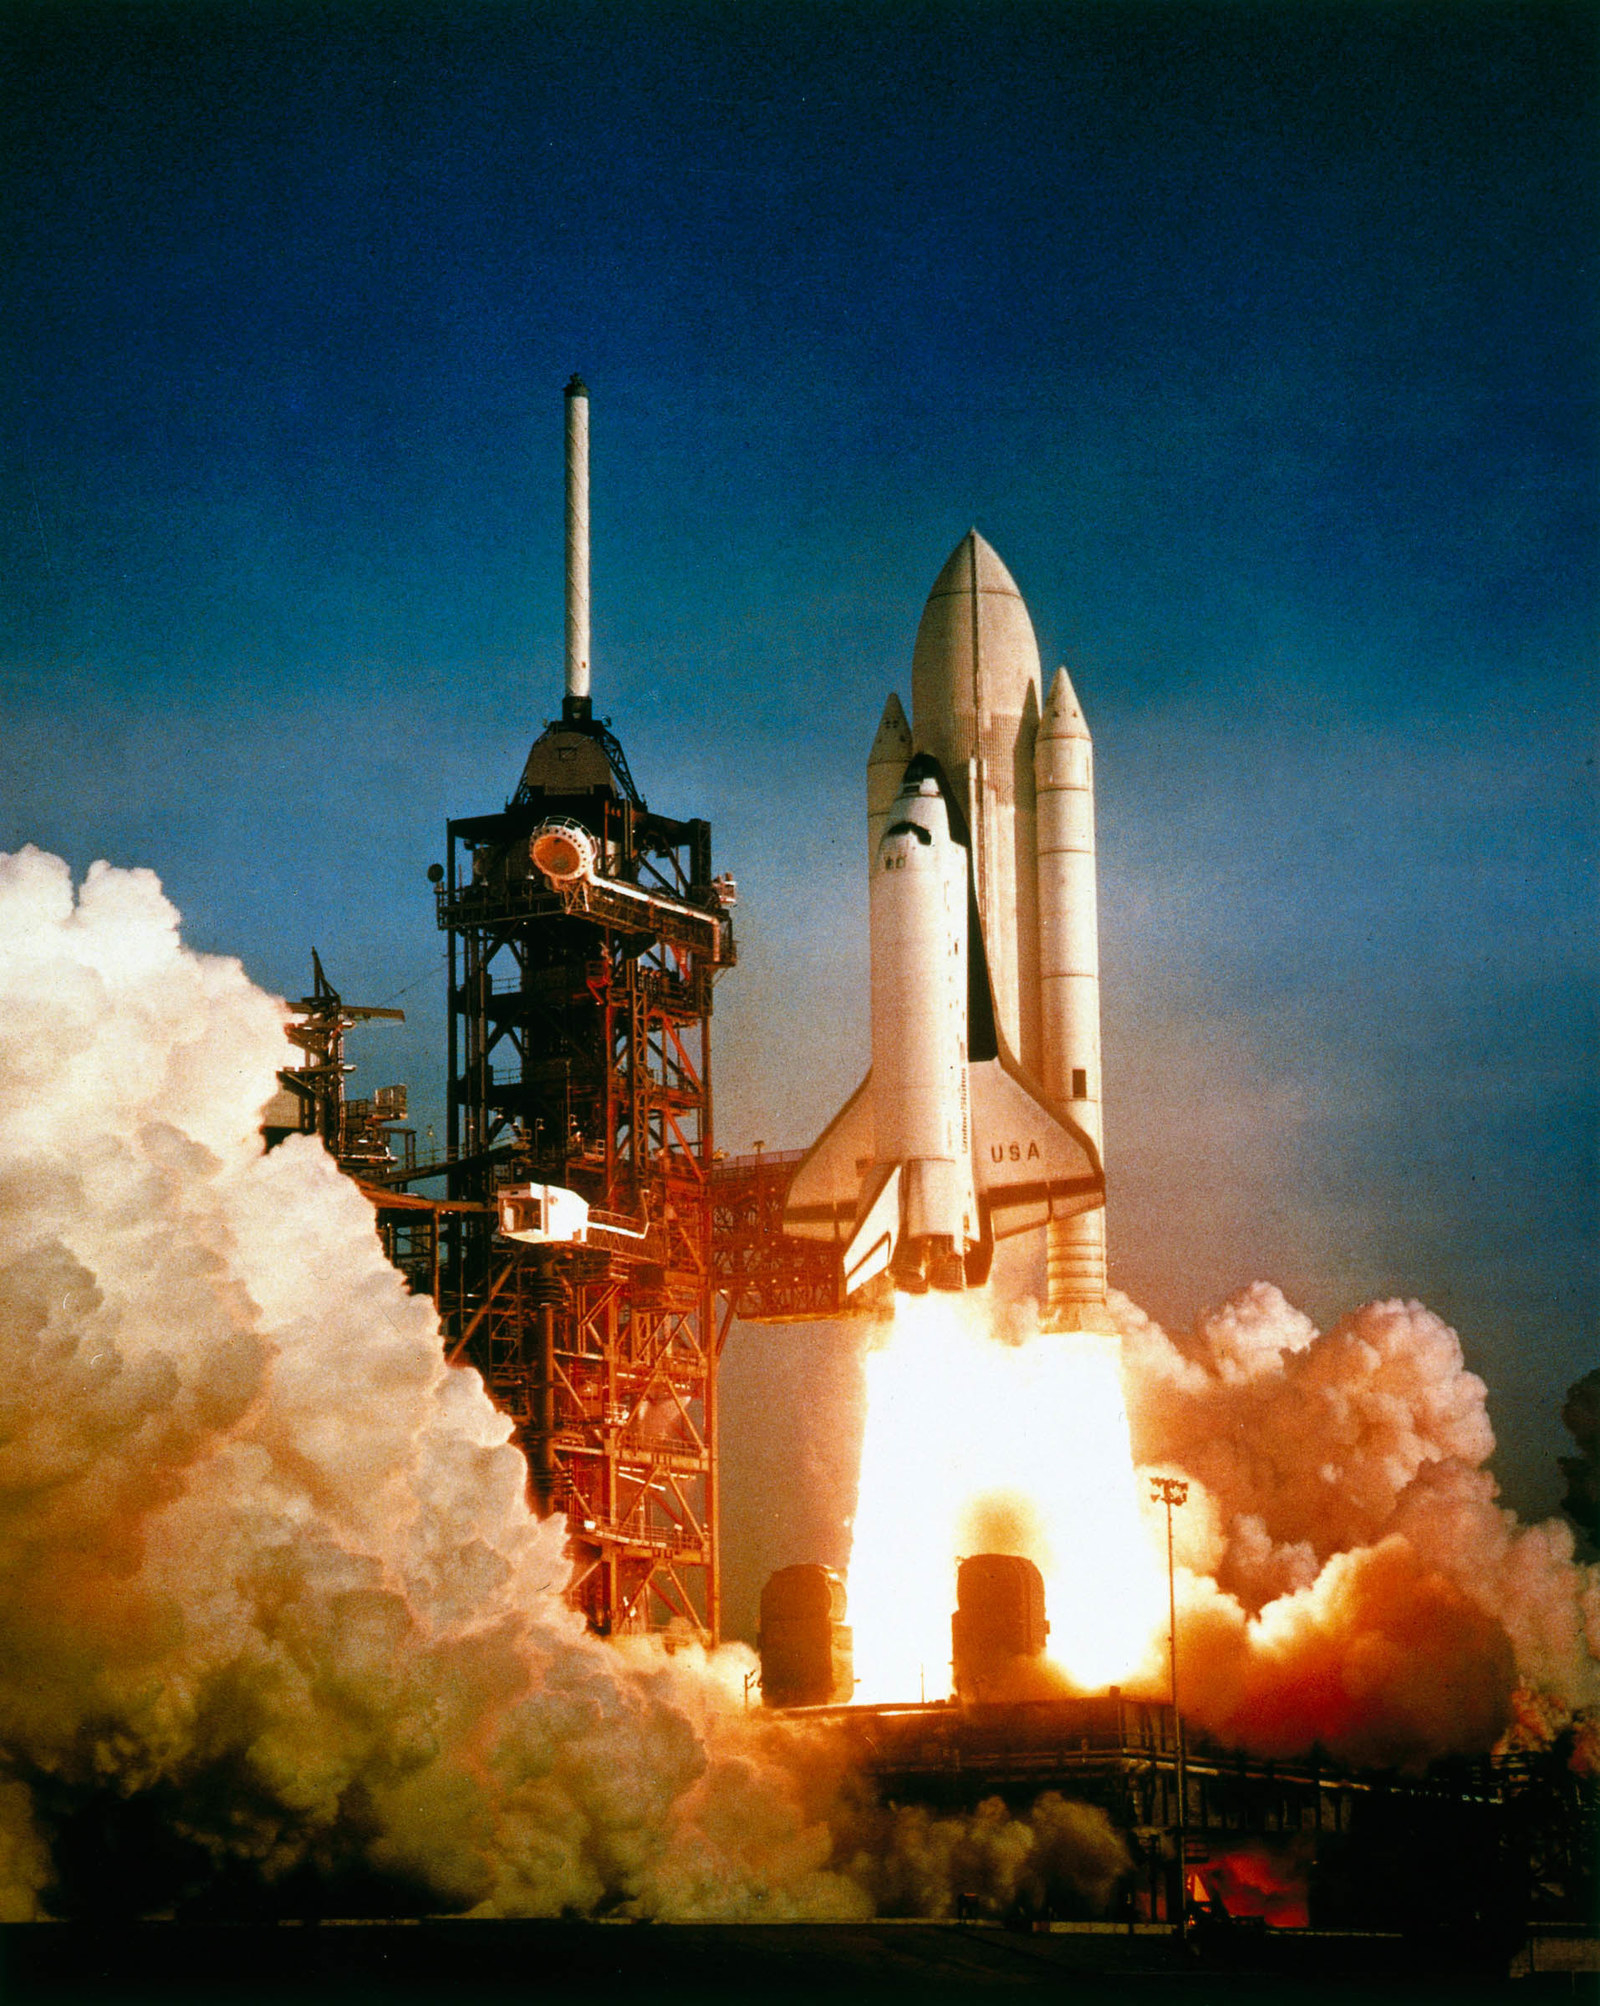 1981 The first manned shuttle, Columbia, crewed by Robert Crippen and John Young, was launched from the Kennedy Space Centre, Cape Canaveral, Florida, on April 12, 1981. Columbia orbited 36 times before landing safely back on Earth. The Space Shuttle, the world's first partially reusable launch vehicle, has been used for all manned US space missions ever since. Columbia successfully completed 28 missions before being lost, together with its crew of seven, on re-entry over Texas on Feb. 1, 2003.